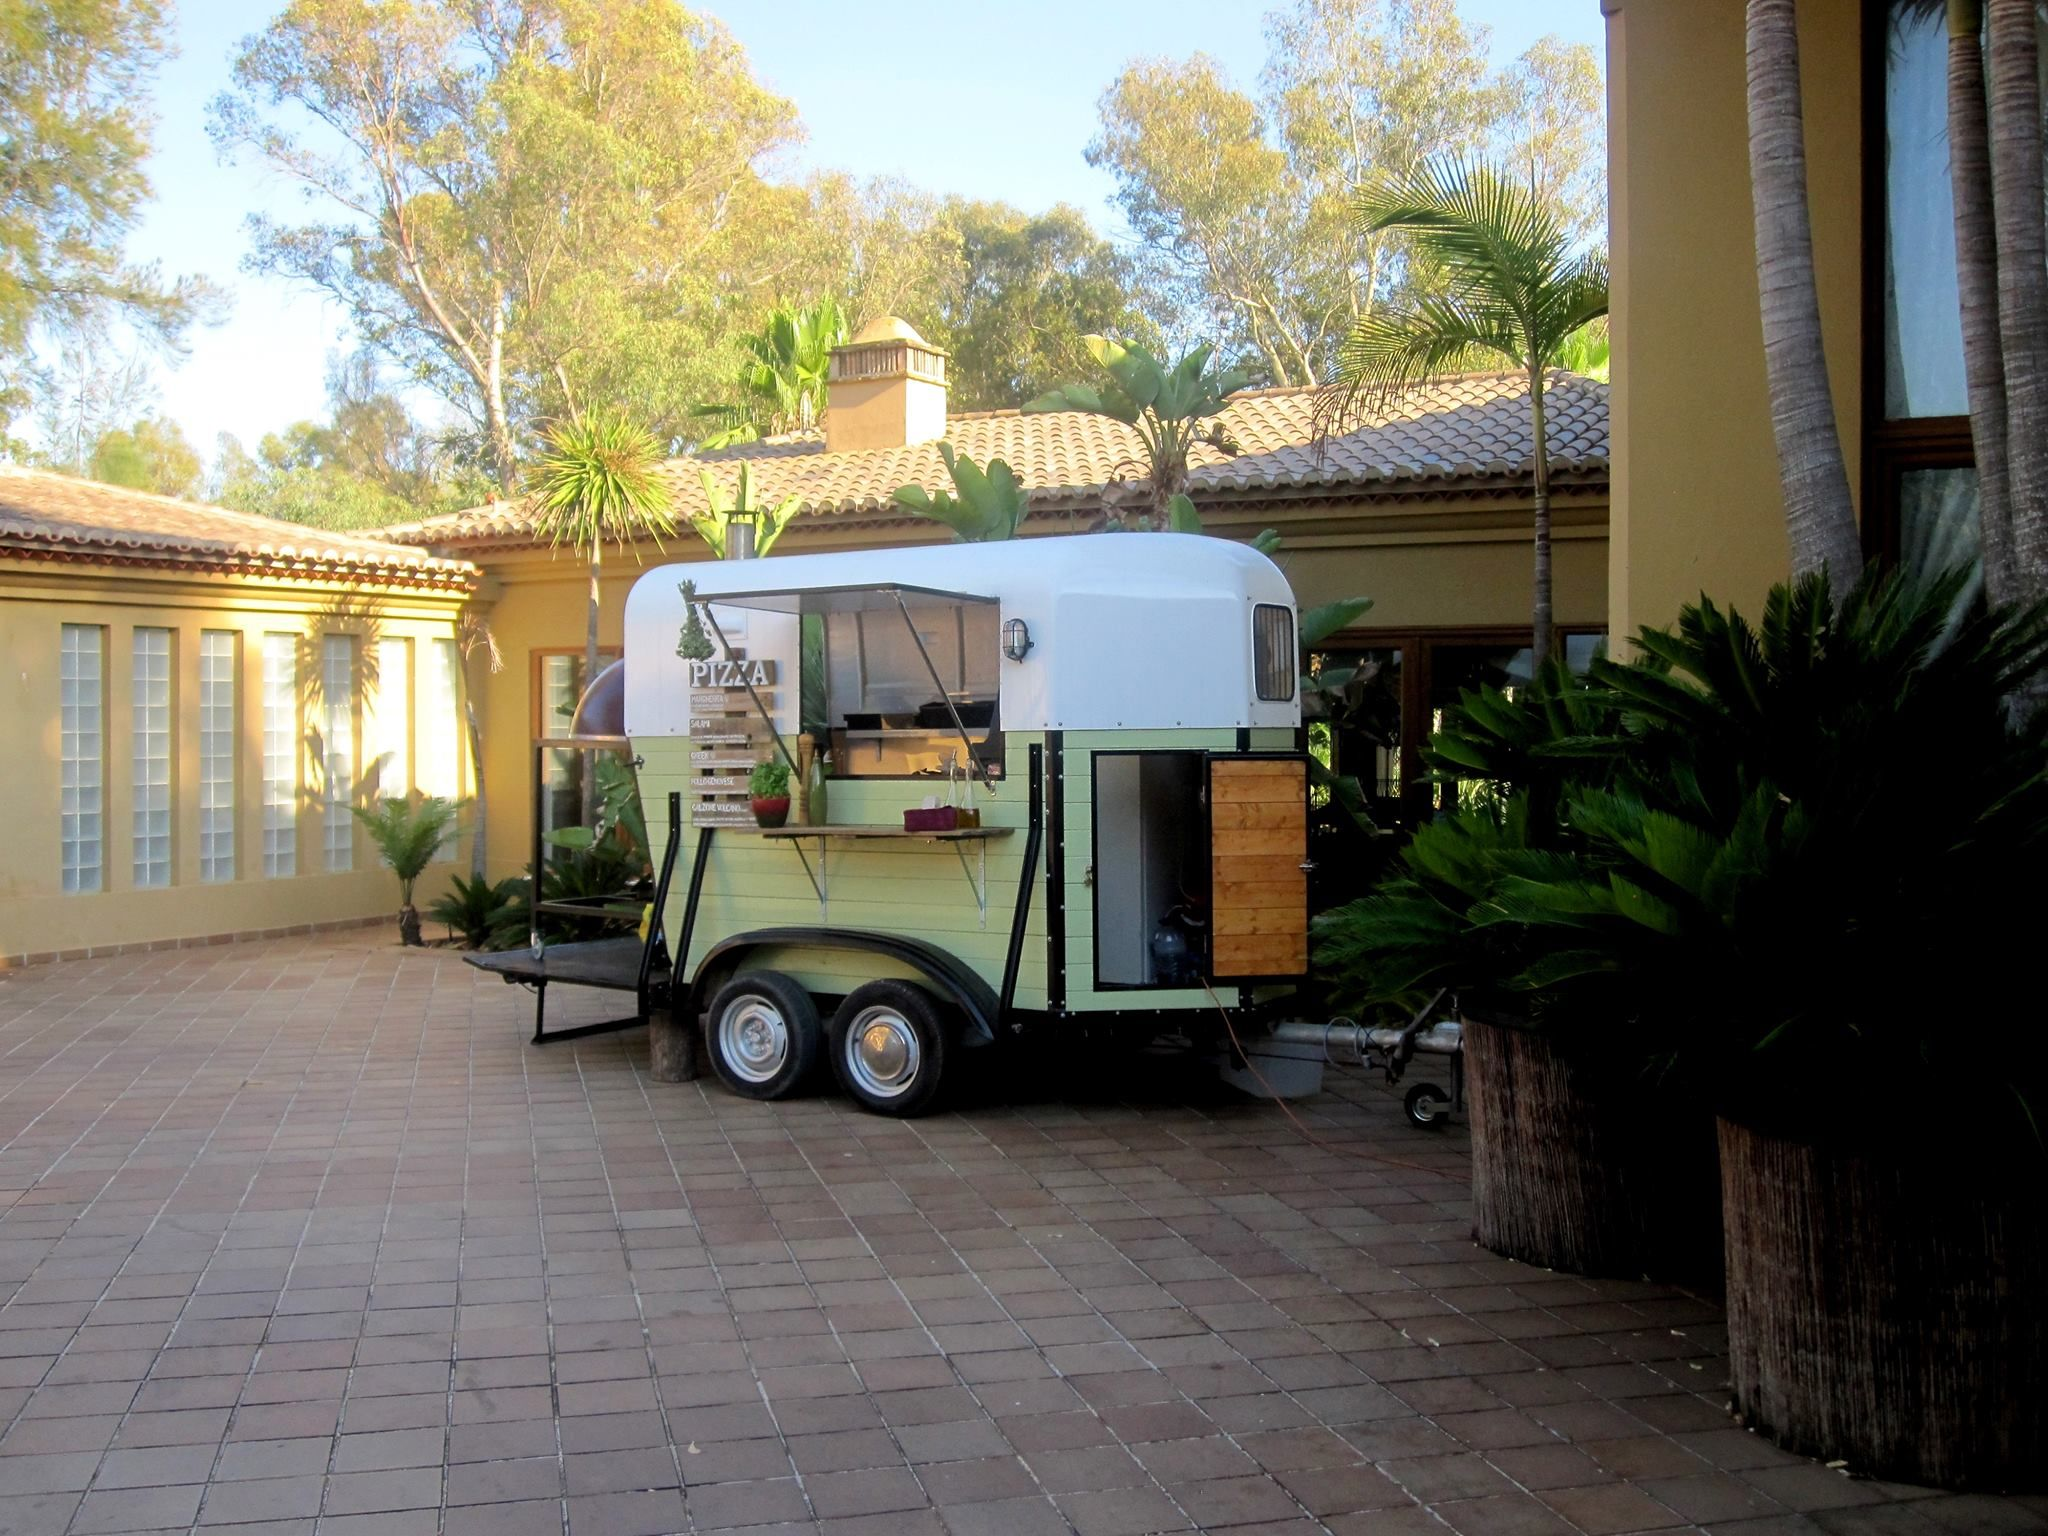 horse box pizza trailer in portugal trailer the little